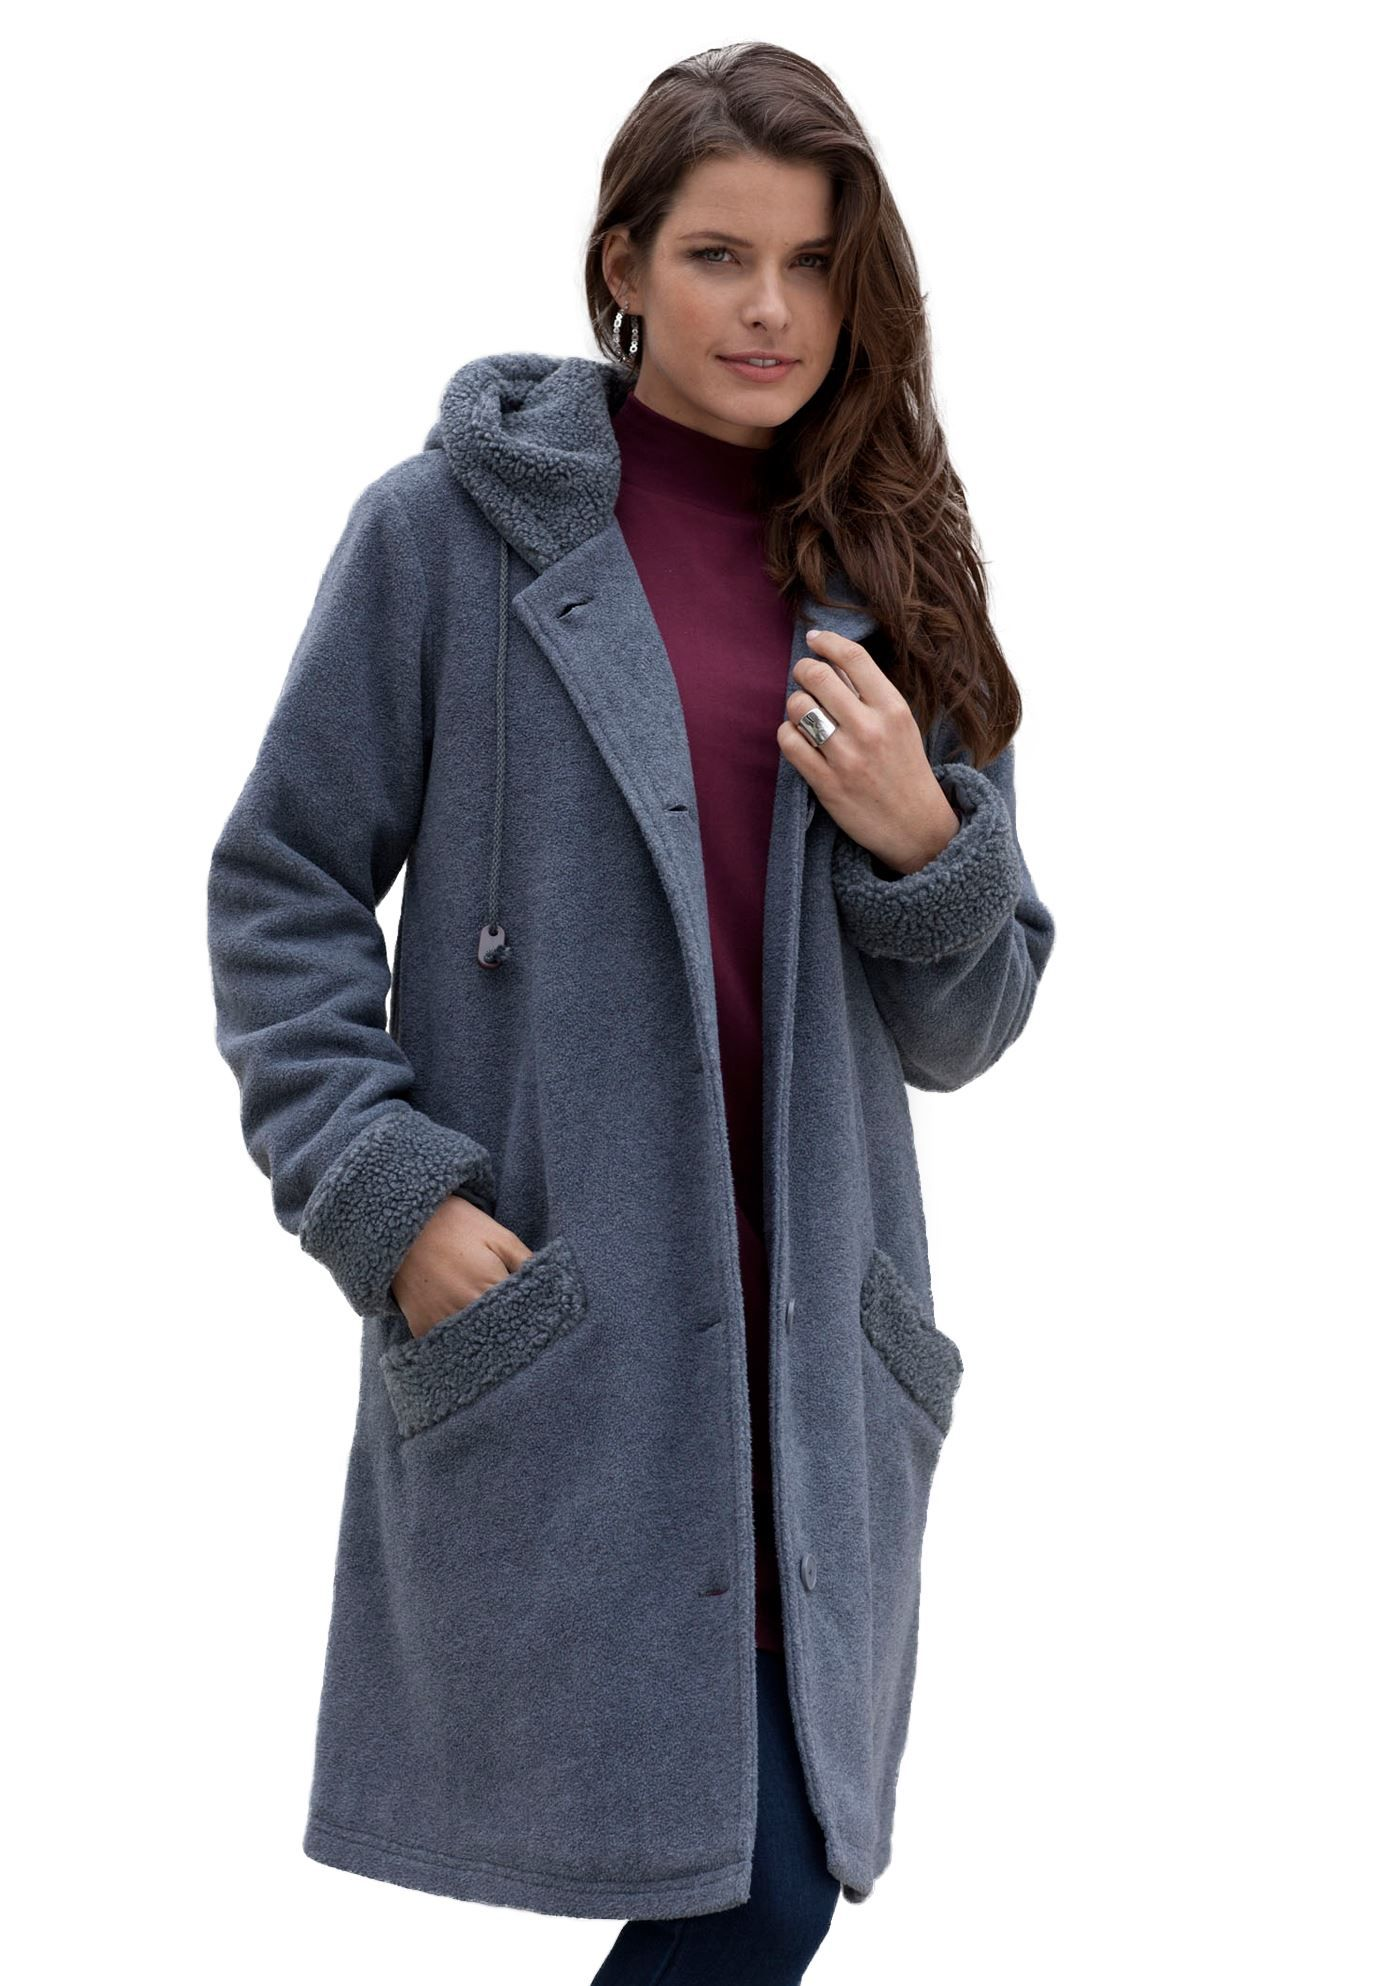 7f5129738ef Ultra soft sherpa lining makes this plus size coat a ust-have for colder  weather!  plussize  winter  outerwear  fashion